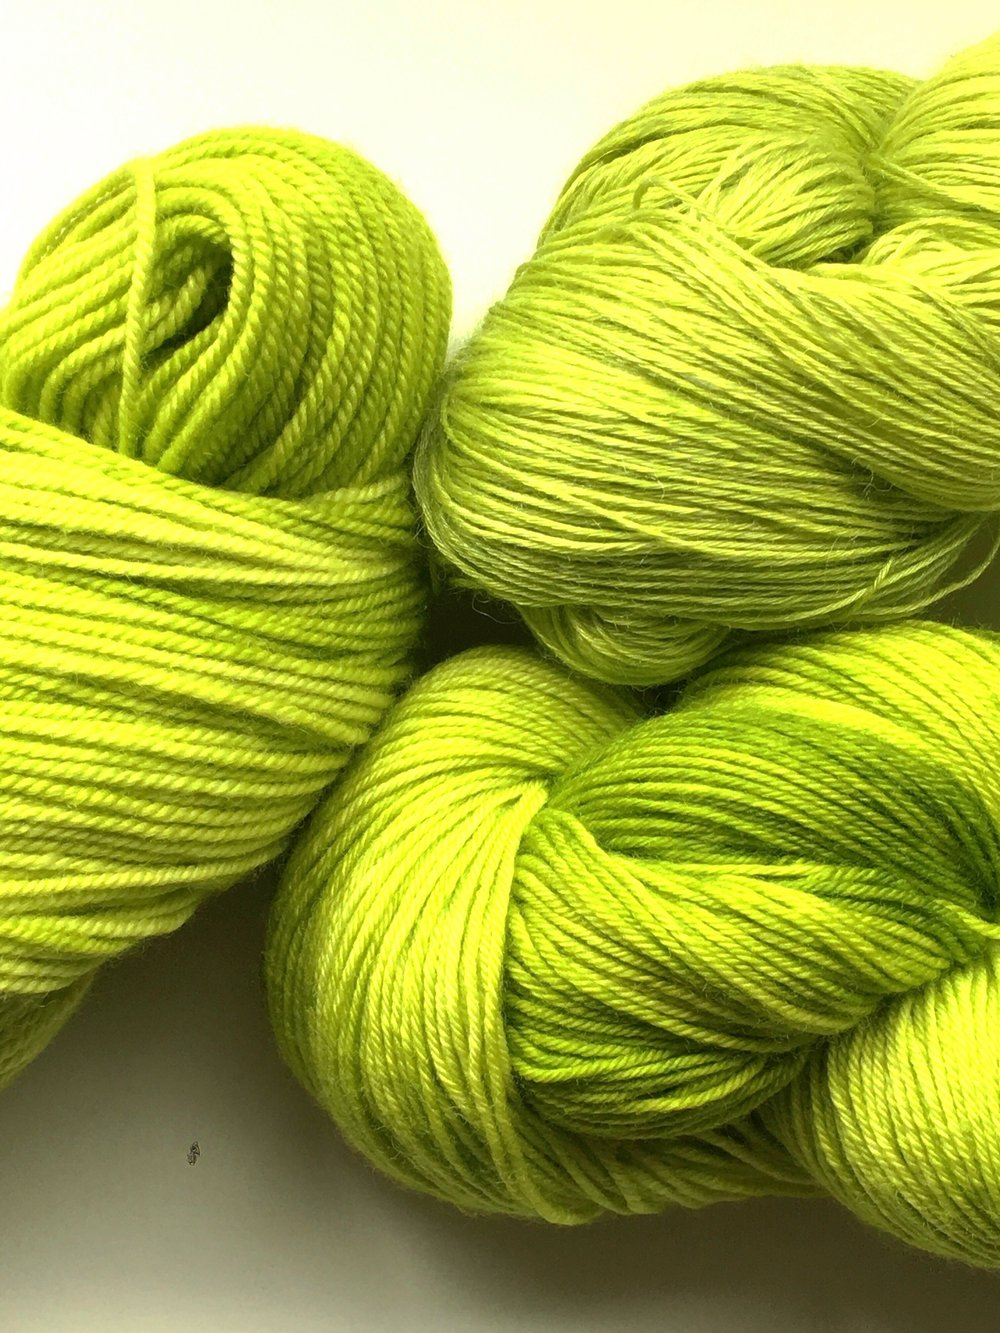 Acid Pop  Super bright, acid green. Pictured on Aura Lace, Sheepy Feet, and Merino Sport.